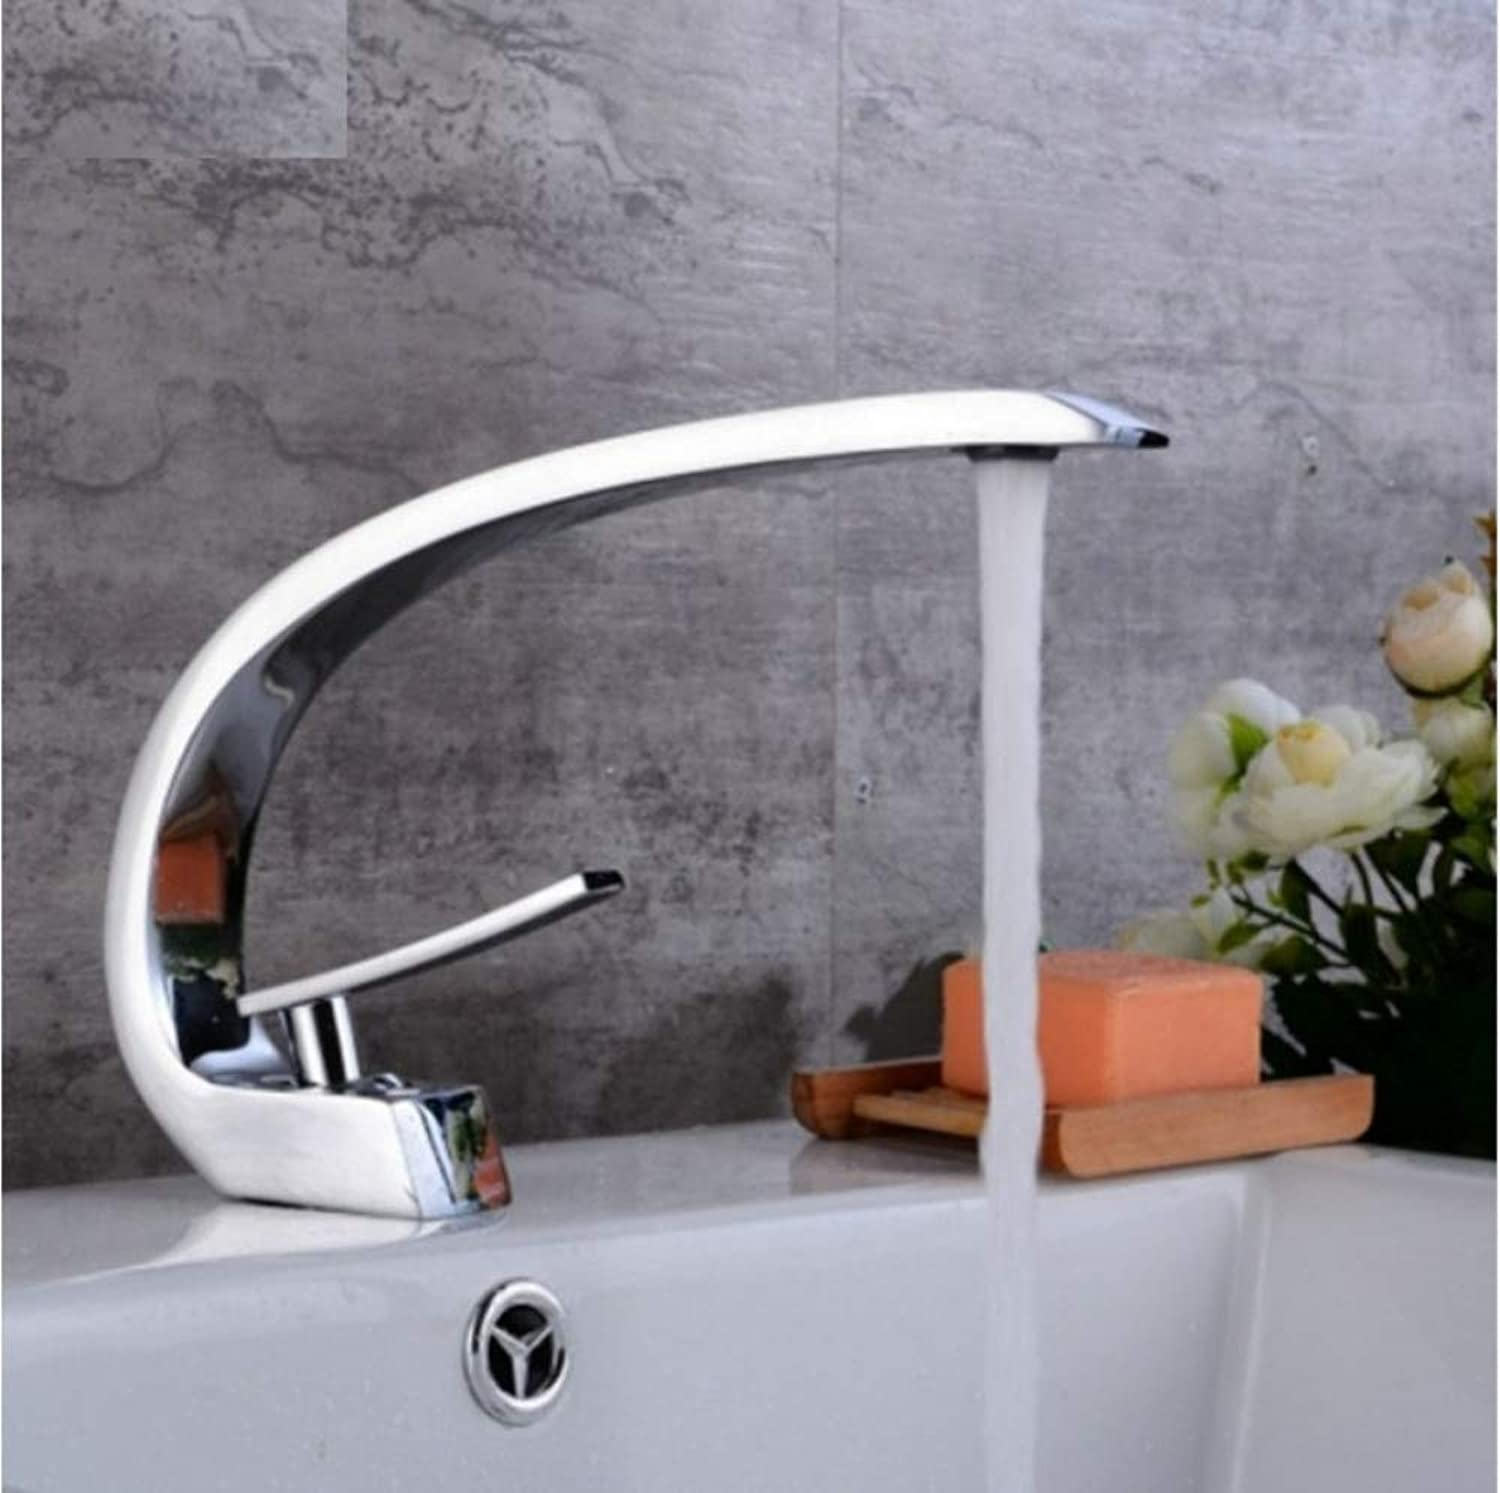 Dwthh Bathroom Basin Sink Faucet Hot and Cold Water Mixer Washbasin Faucets Single Handle Single Hole for Bathroom